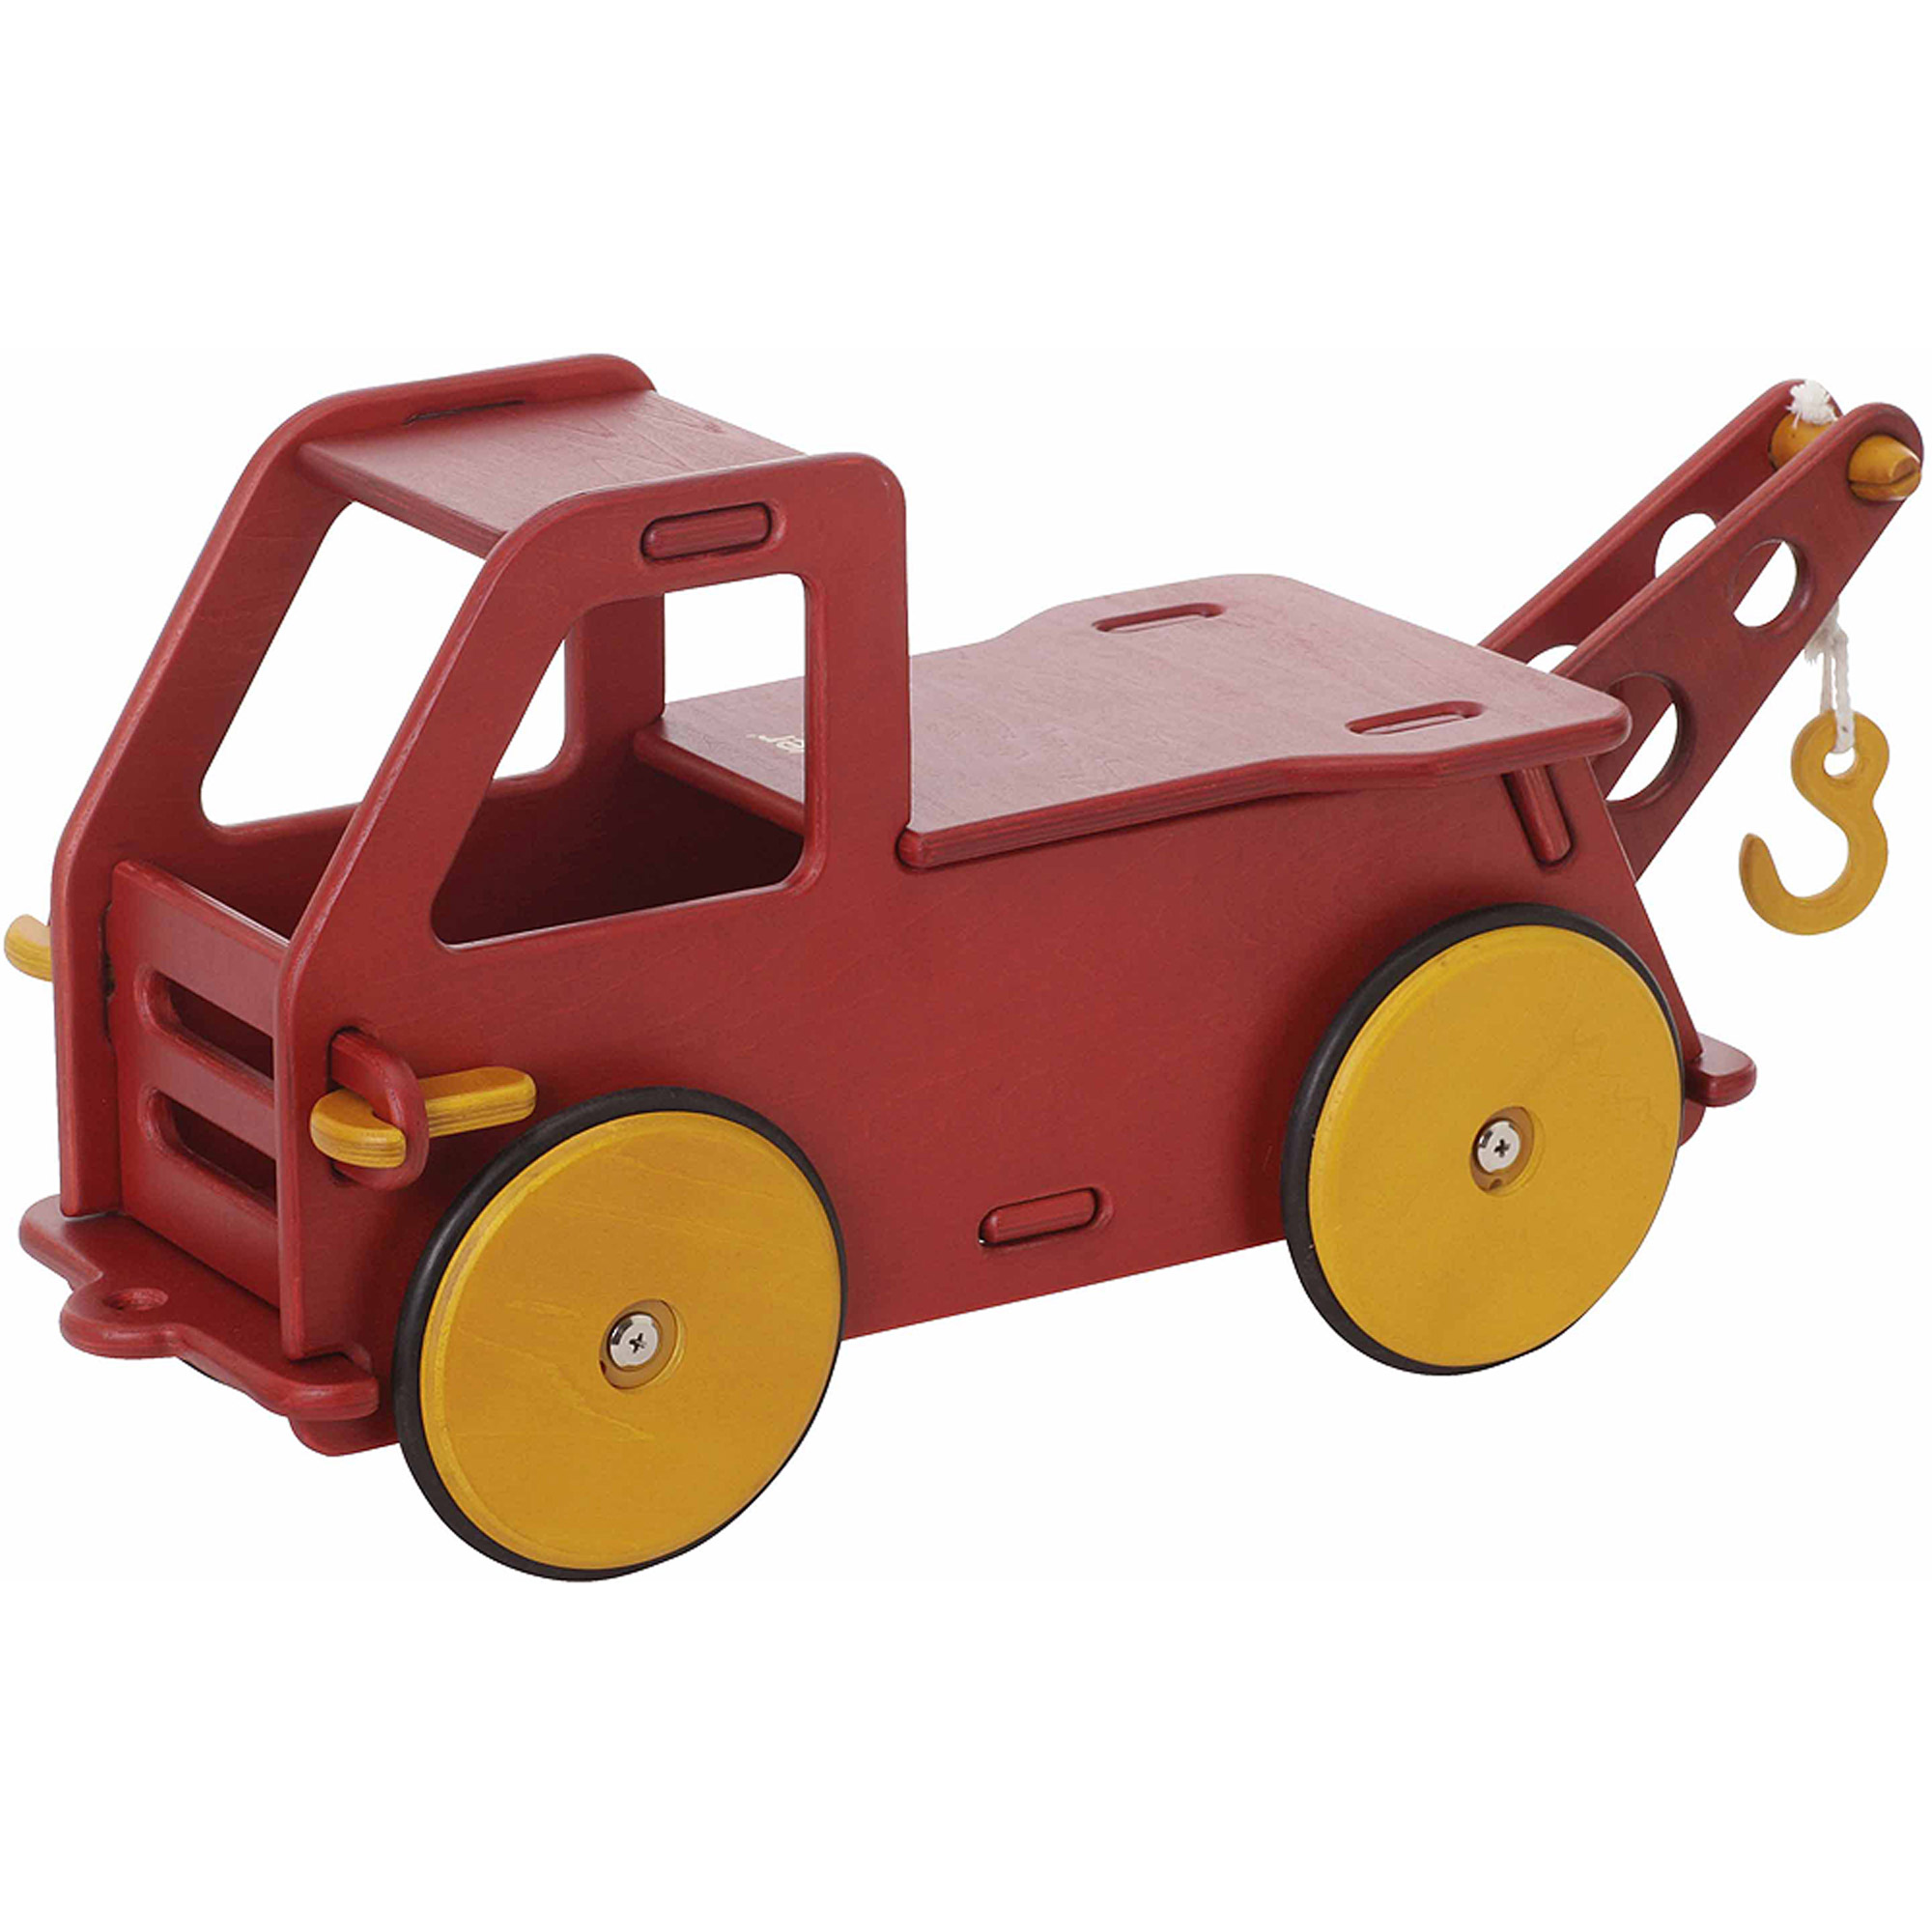 Moover Baby Truck, Red